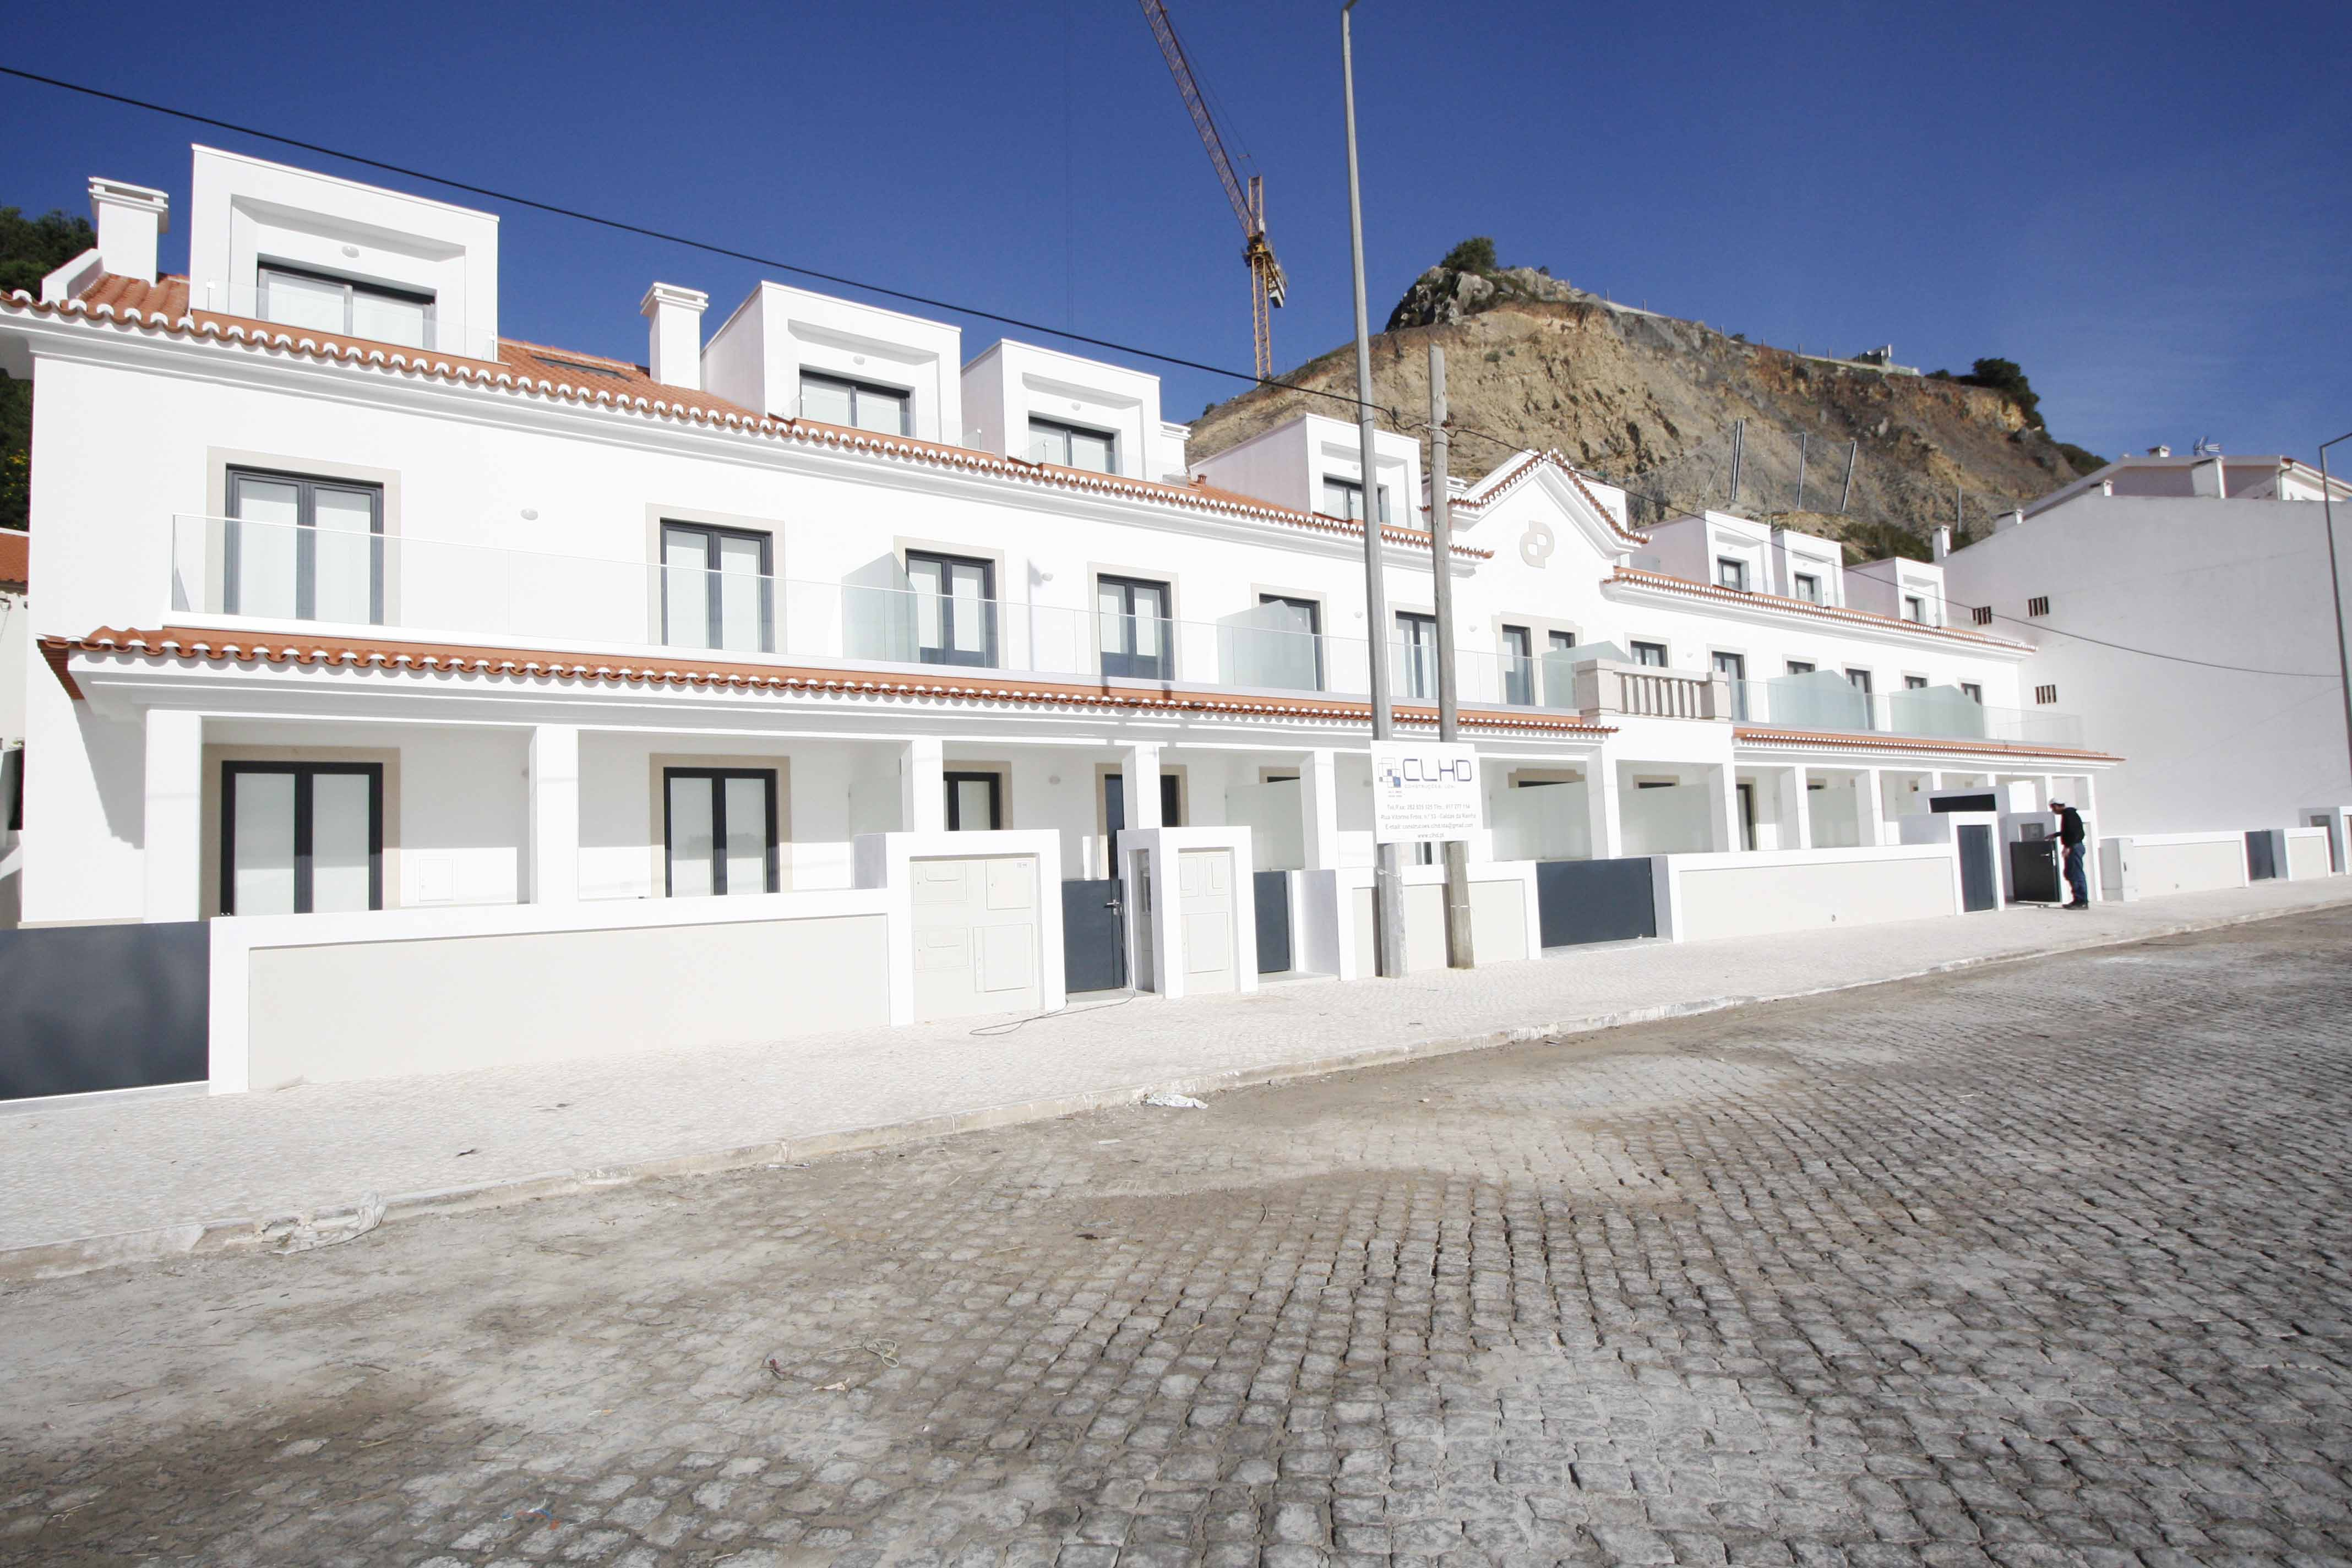 10-cais-sao-martinho-porto-silver-coast-new-buil-construction-portugal-for-sale